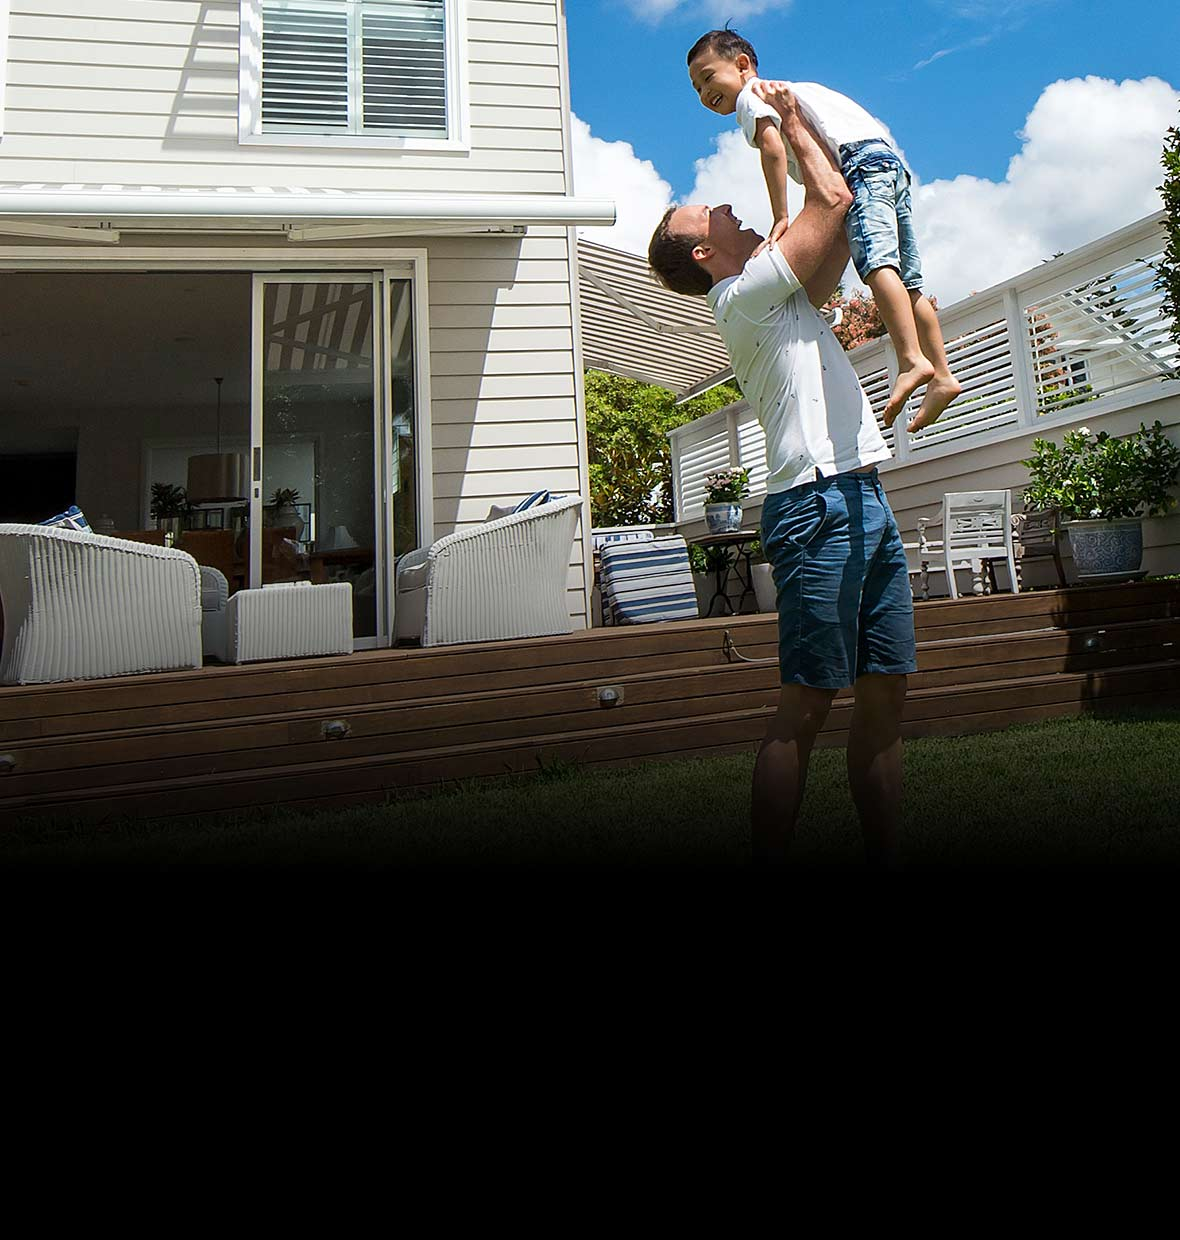 Home loans, tips, tools, property search & more - CommBank